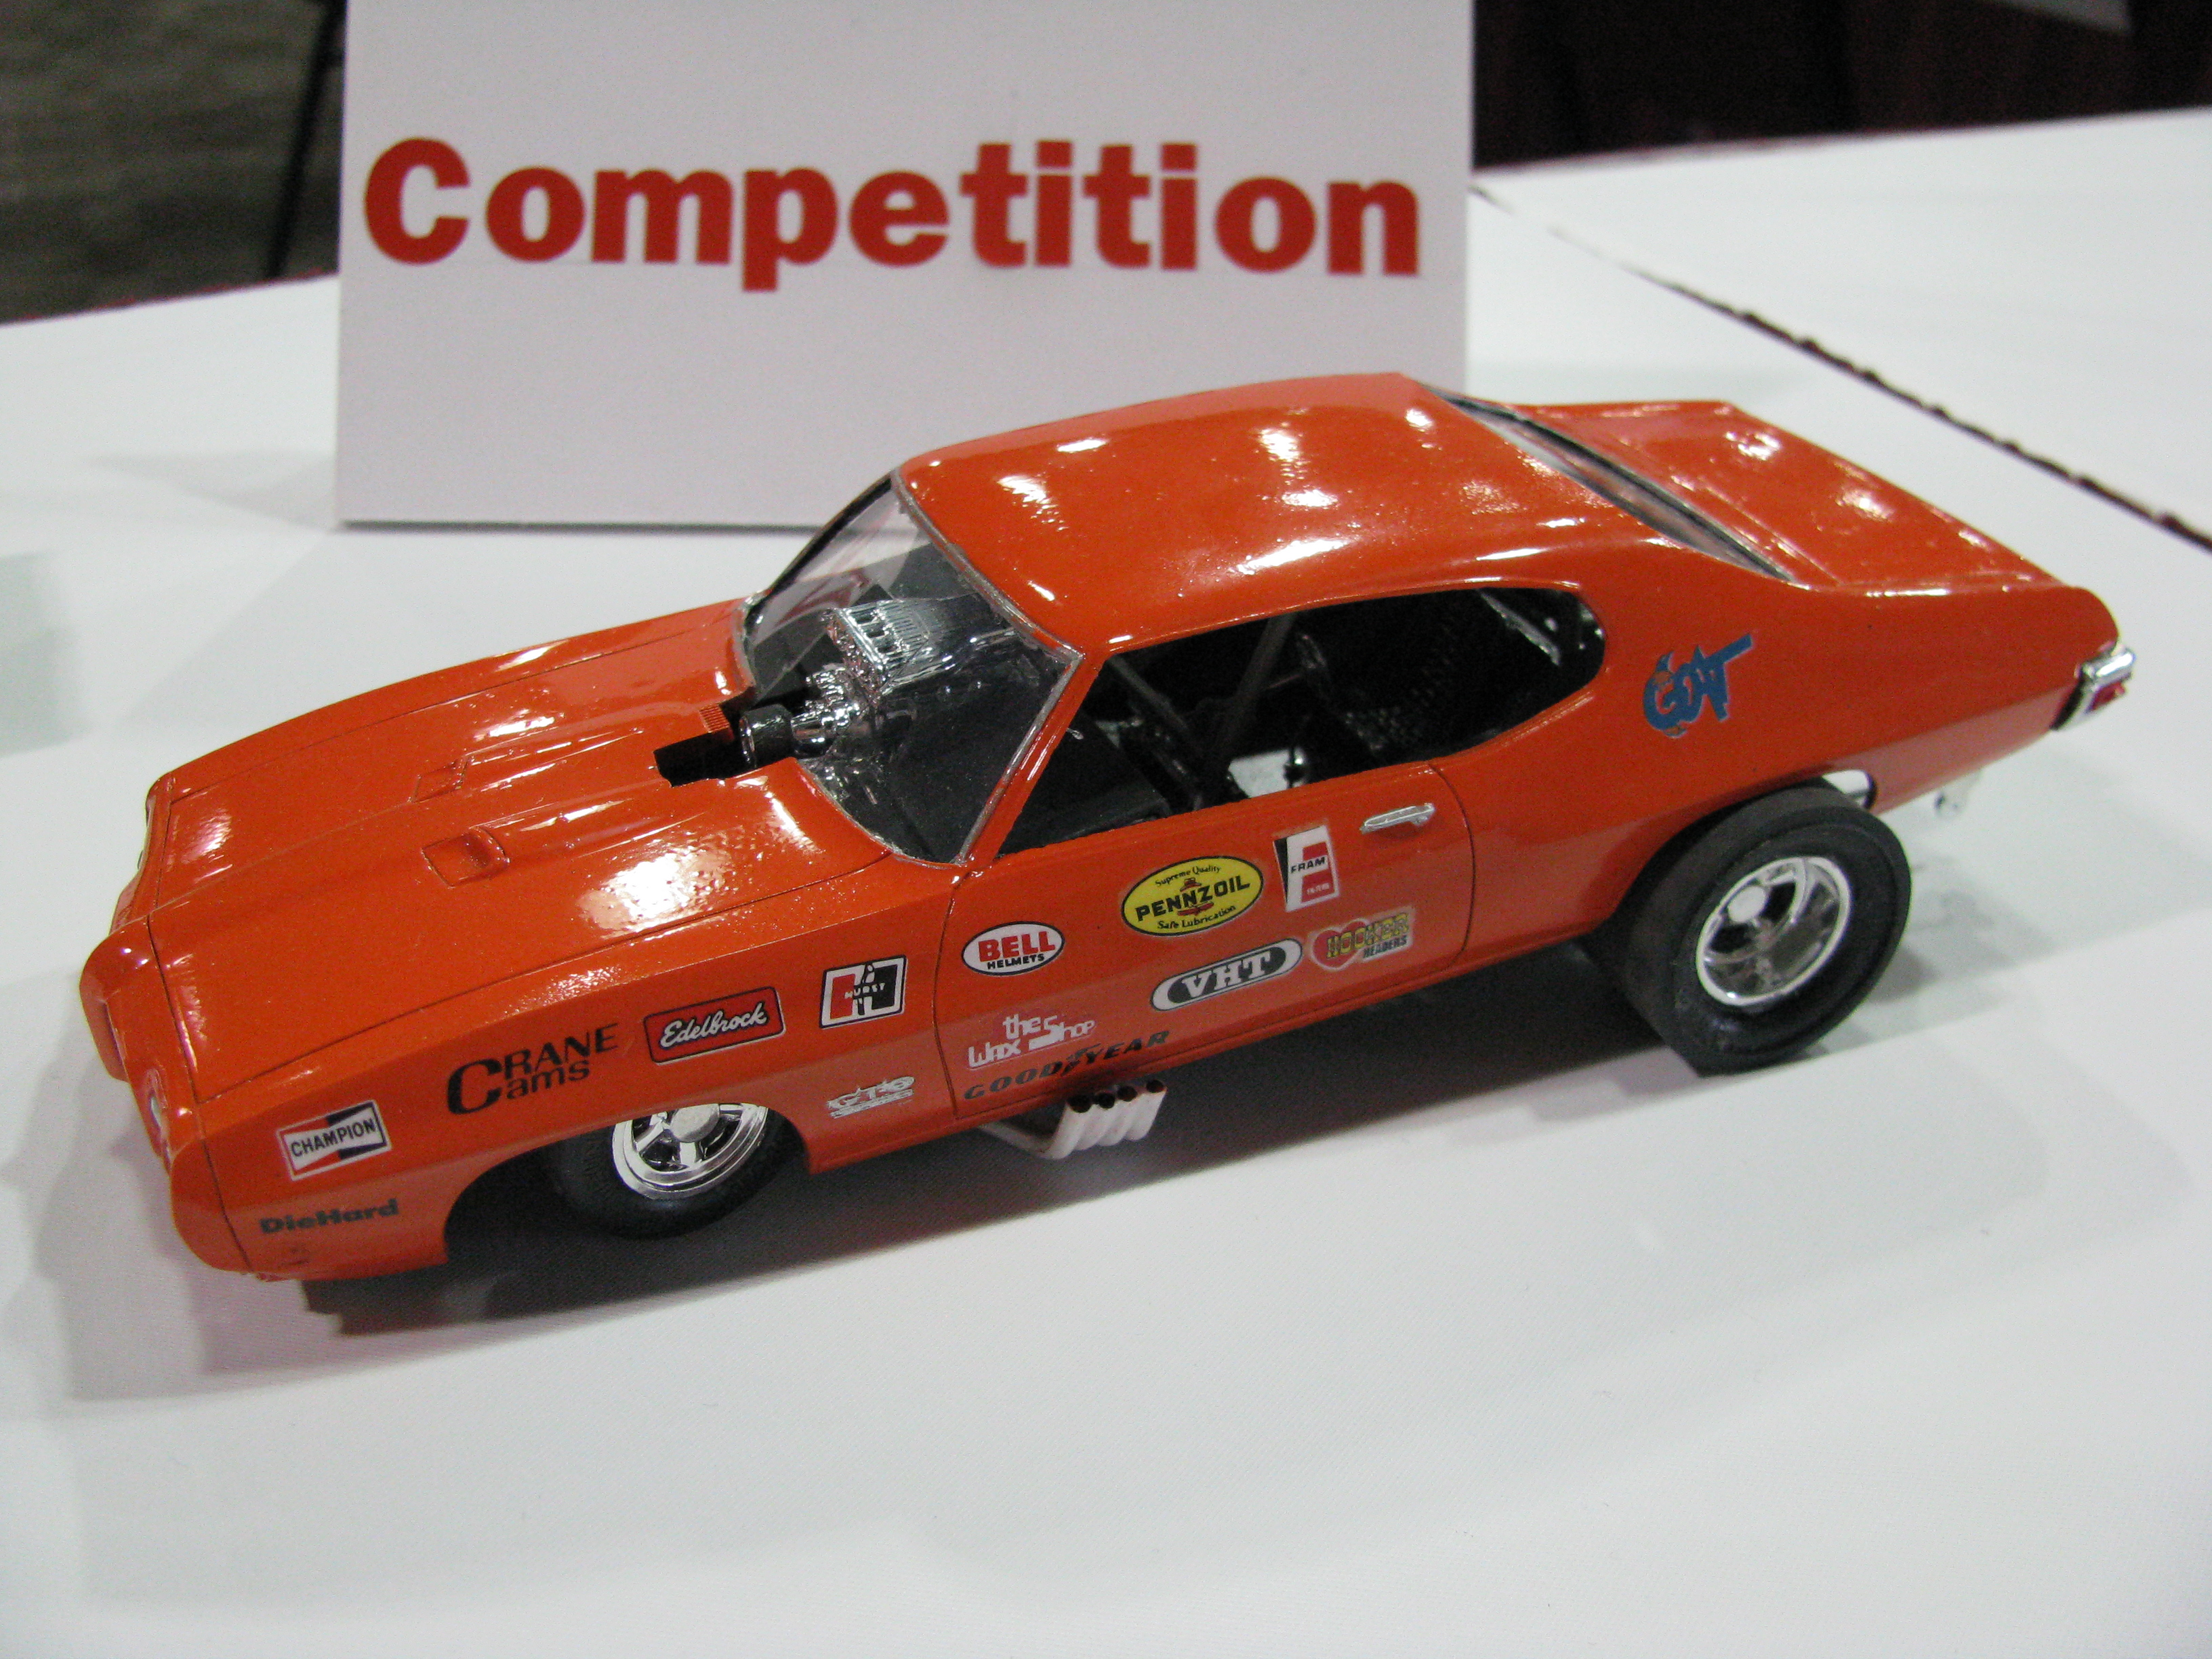 View photo of 1970 Pontiac GTO Funny Car Model - 3,558KB